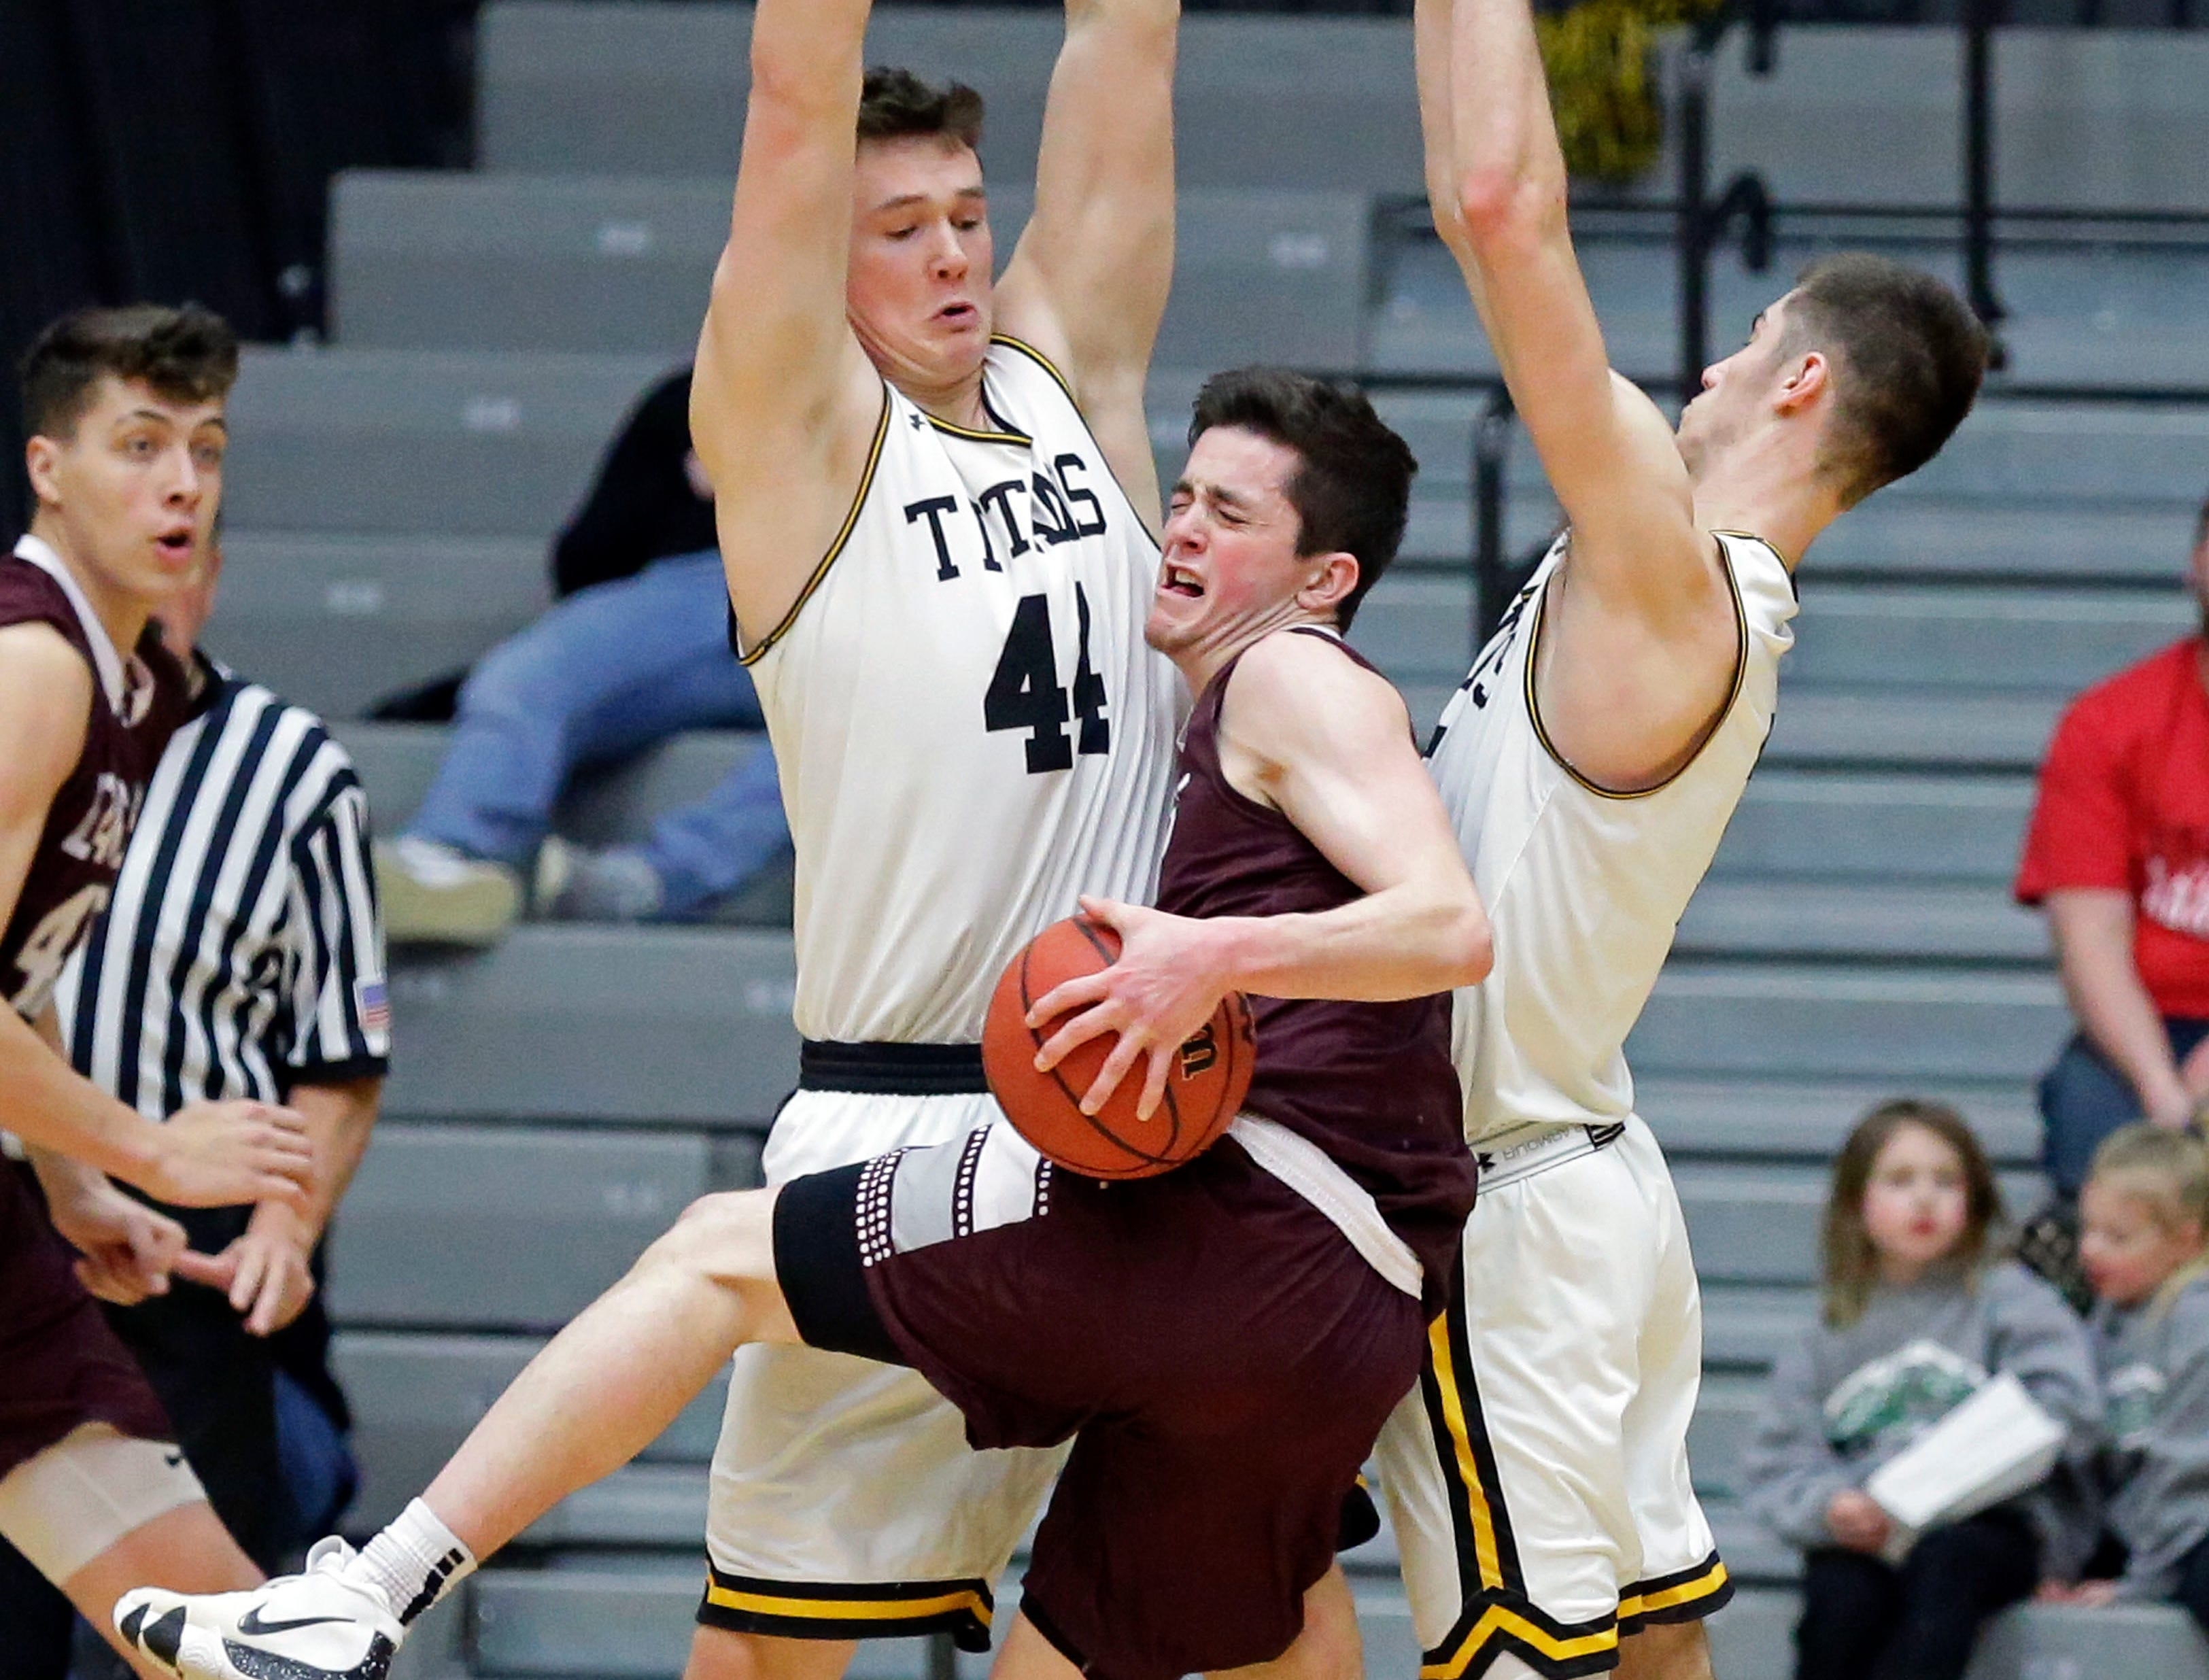 Brendon Manning of UW-La Crosse is pinned between Jack Flynn, left, and Adam Fravert of UW-Oshkosh in Wisconsin Intercollegiate Athletic Conference basketball Saturday, January 19, 2019, at Kolf Sports Center in Oshkosh, Wis. 